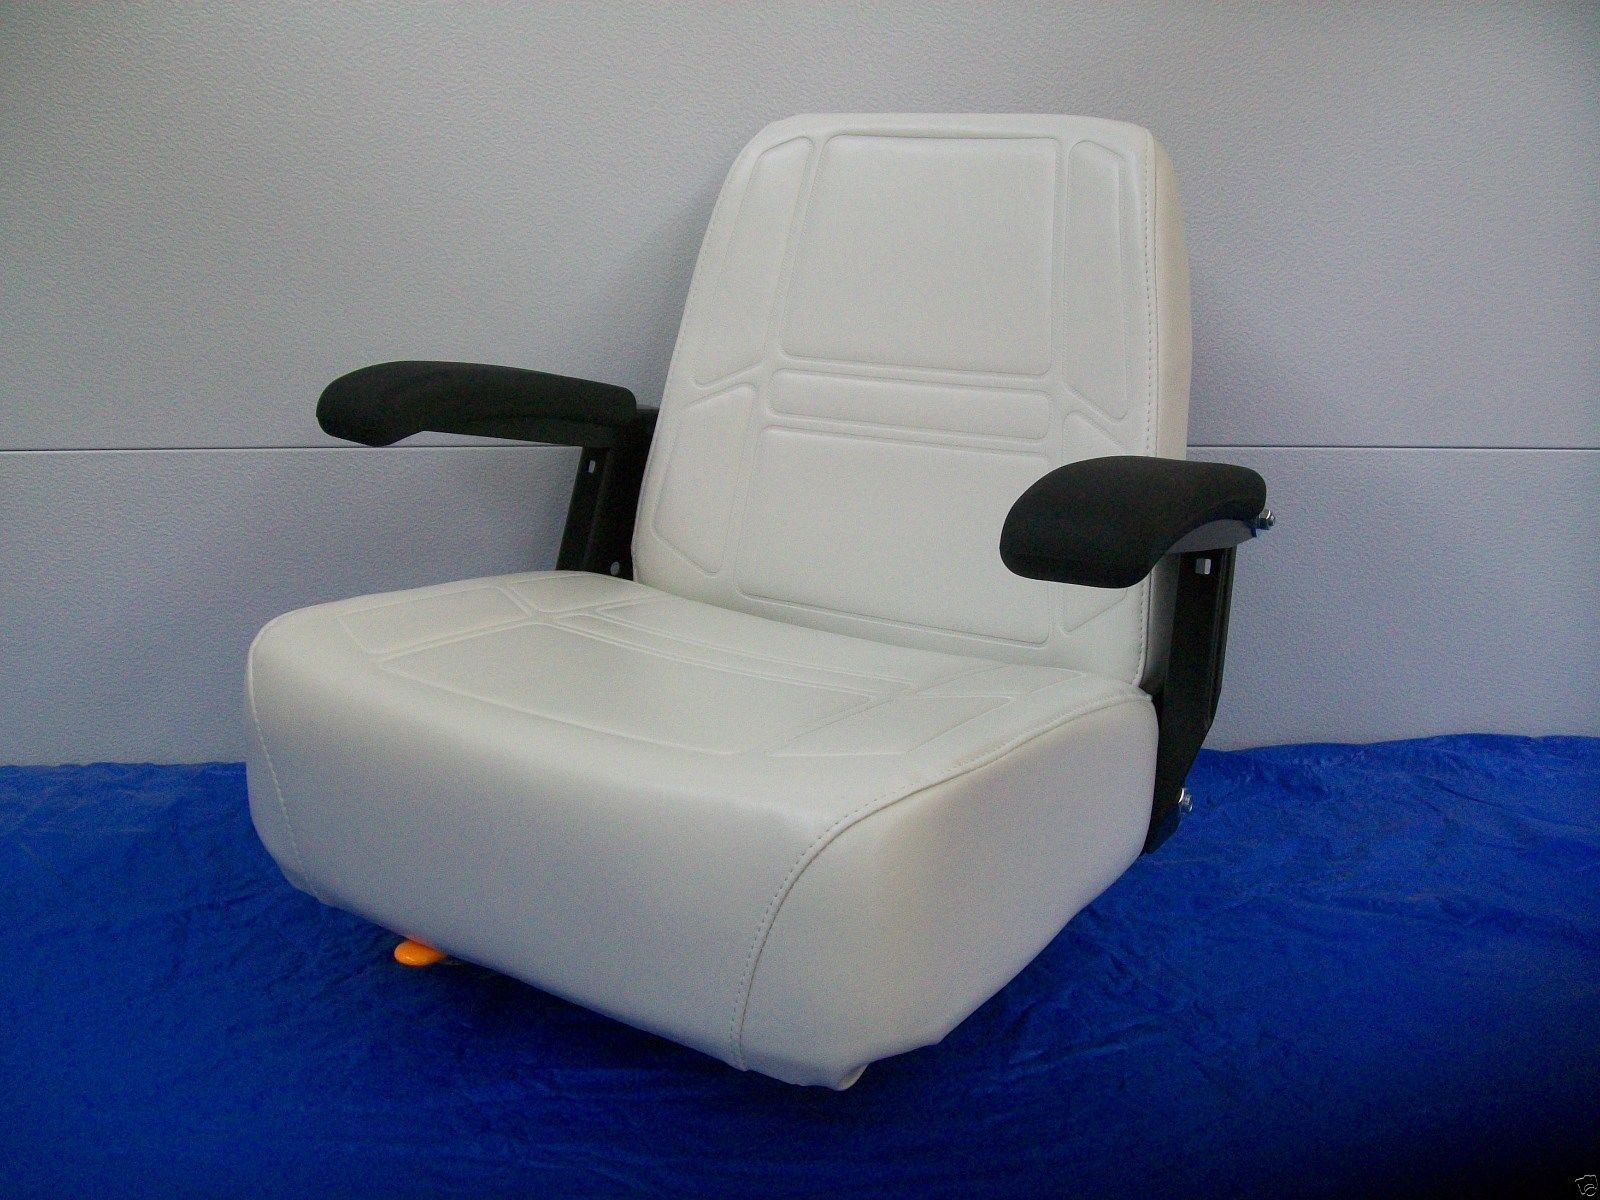 Deluxe comfort ride seat w flip up armrests dixie chopper zero dixie chopper zero turn mowers jc pooptronica Images